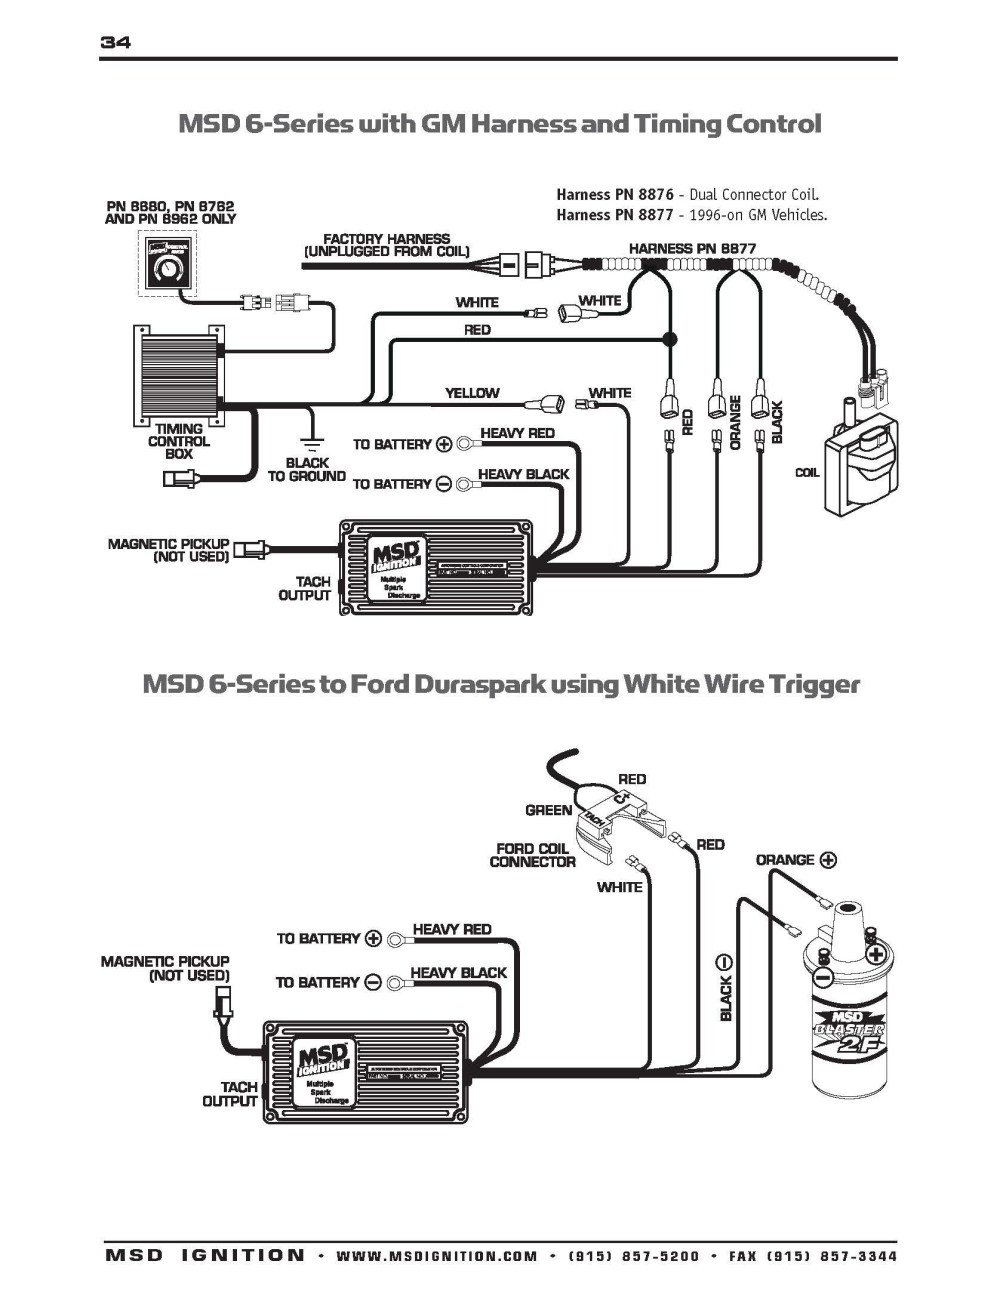 medium resolution of msd distributor wiring harness diagram wiring diagram article review